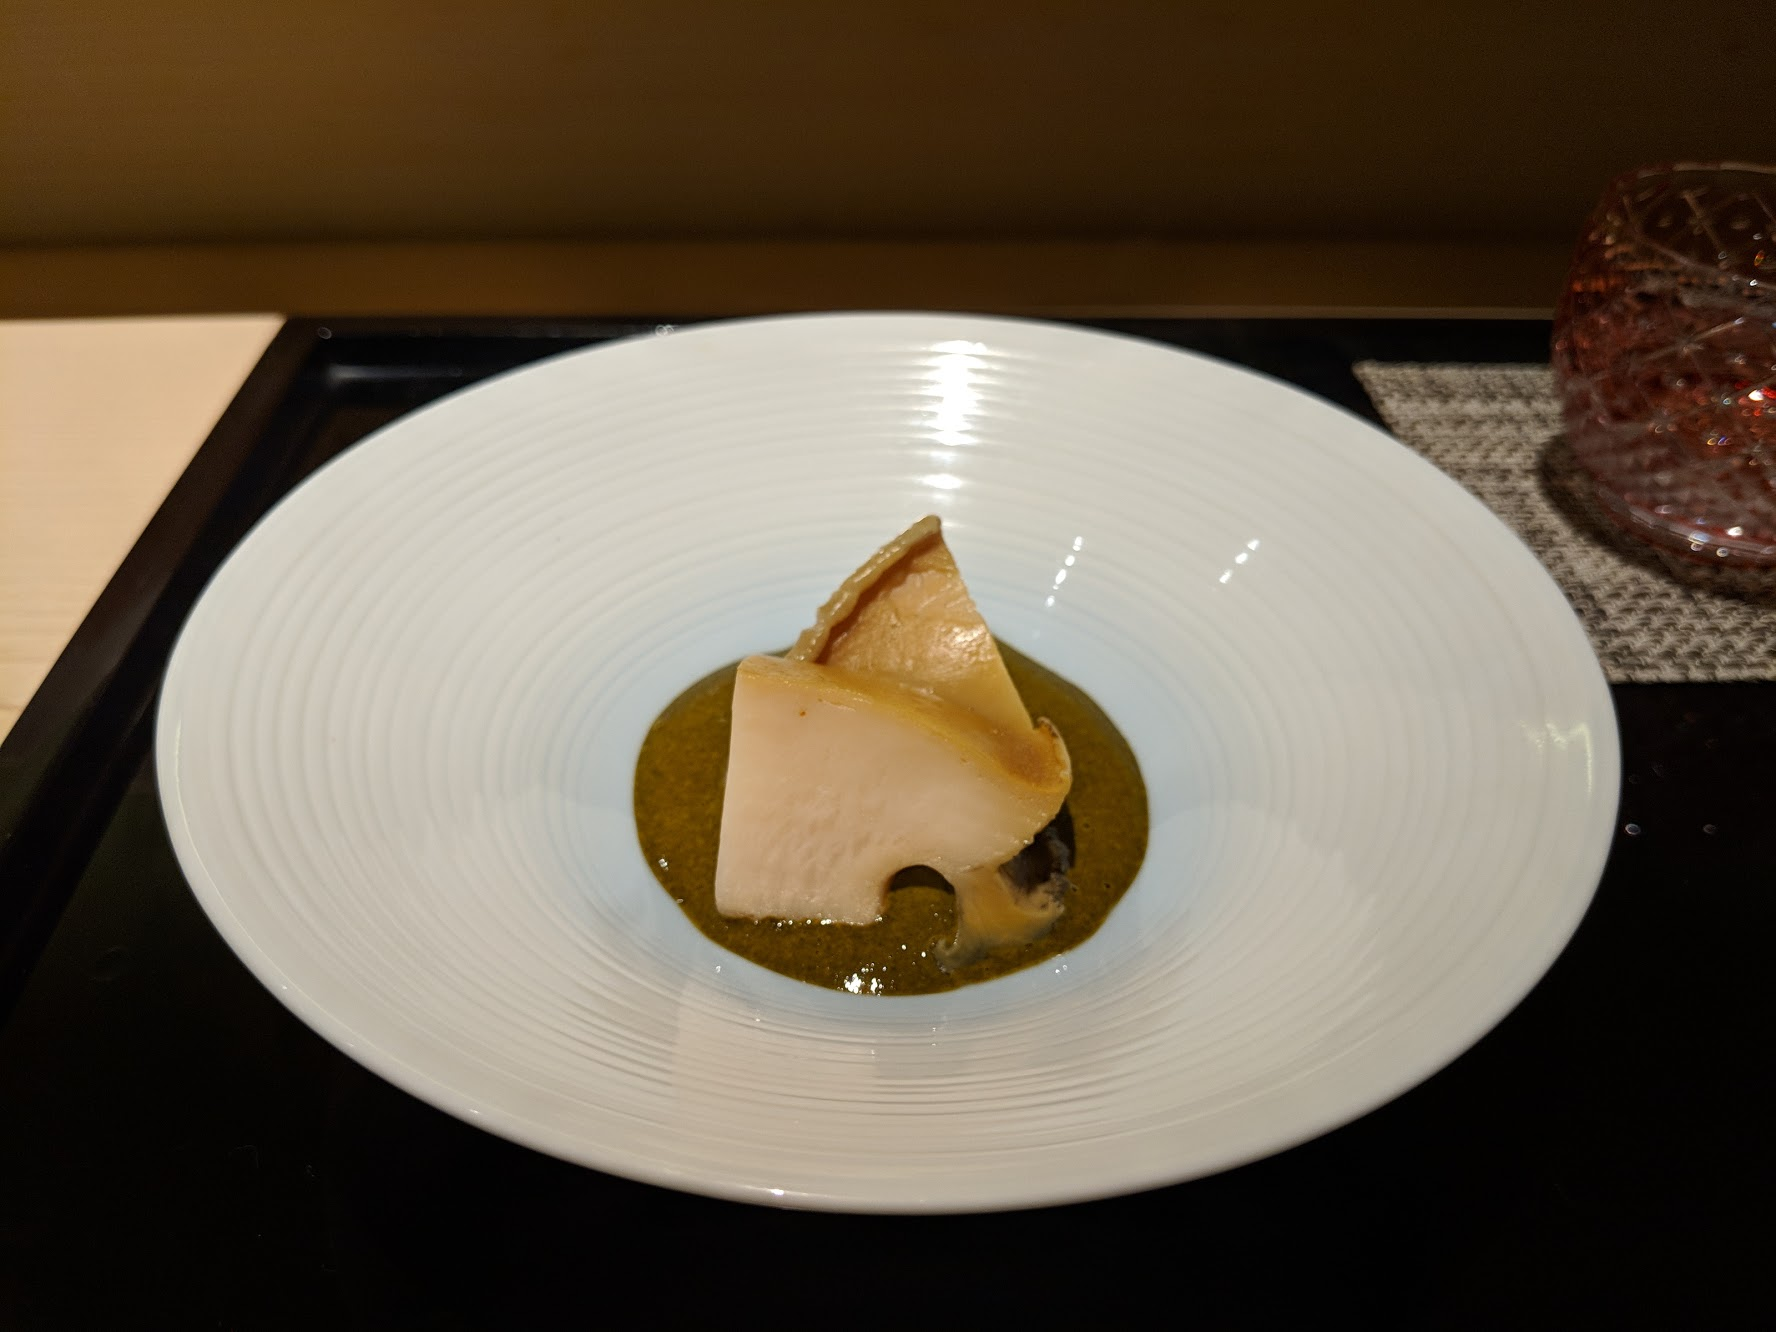 Abalone in its liver sauce.